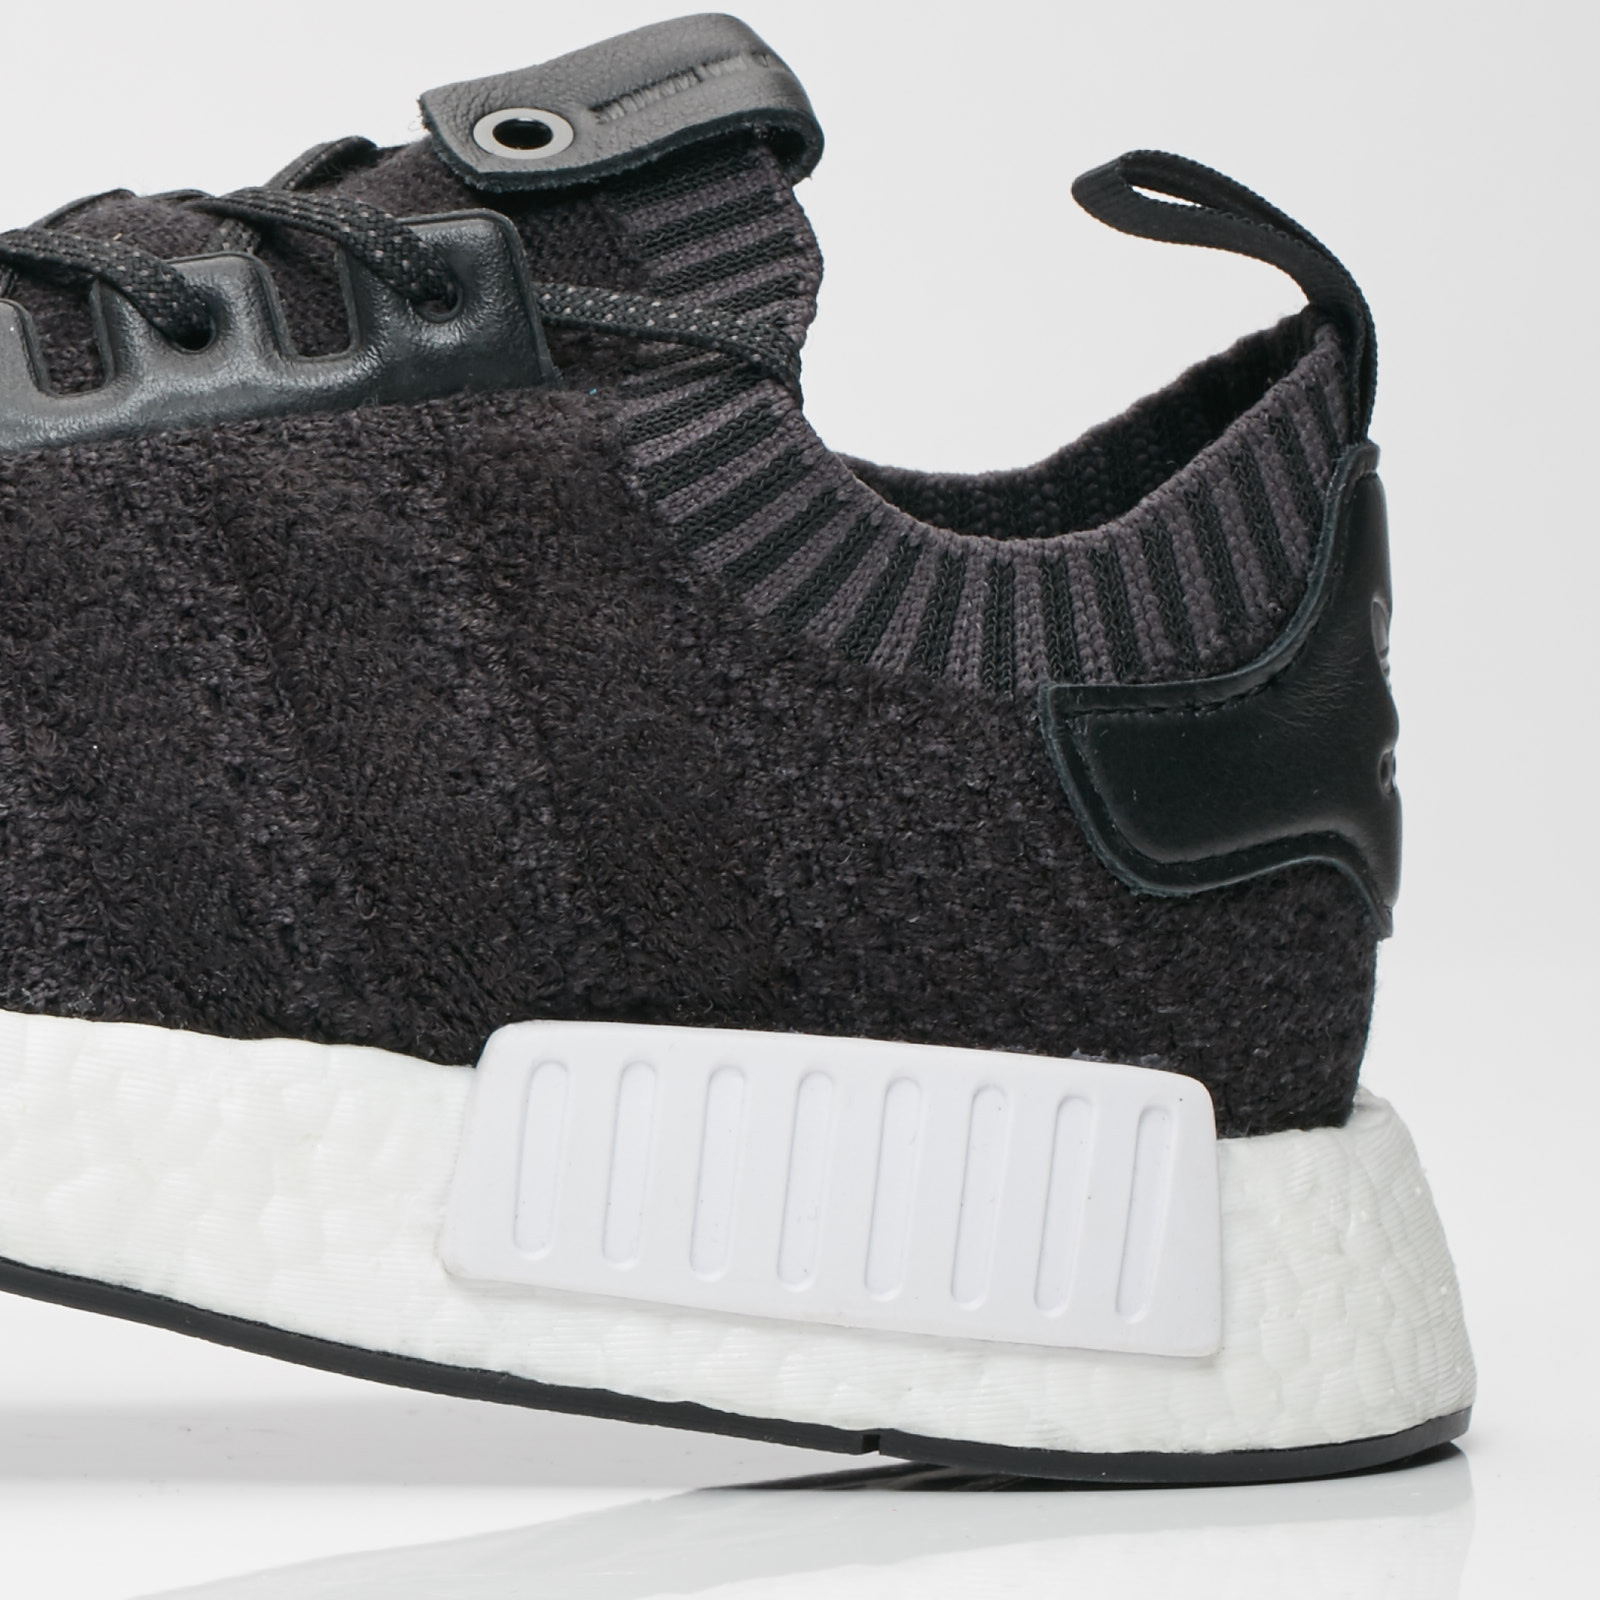 newest collection a2d2c 65a5a adidas NMD R1 | A Ma Maniere x Invincible - Cm7879 ...